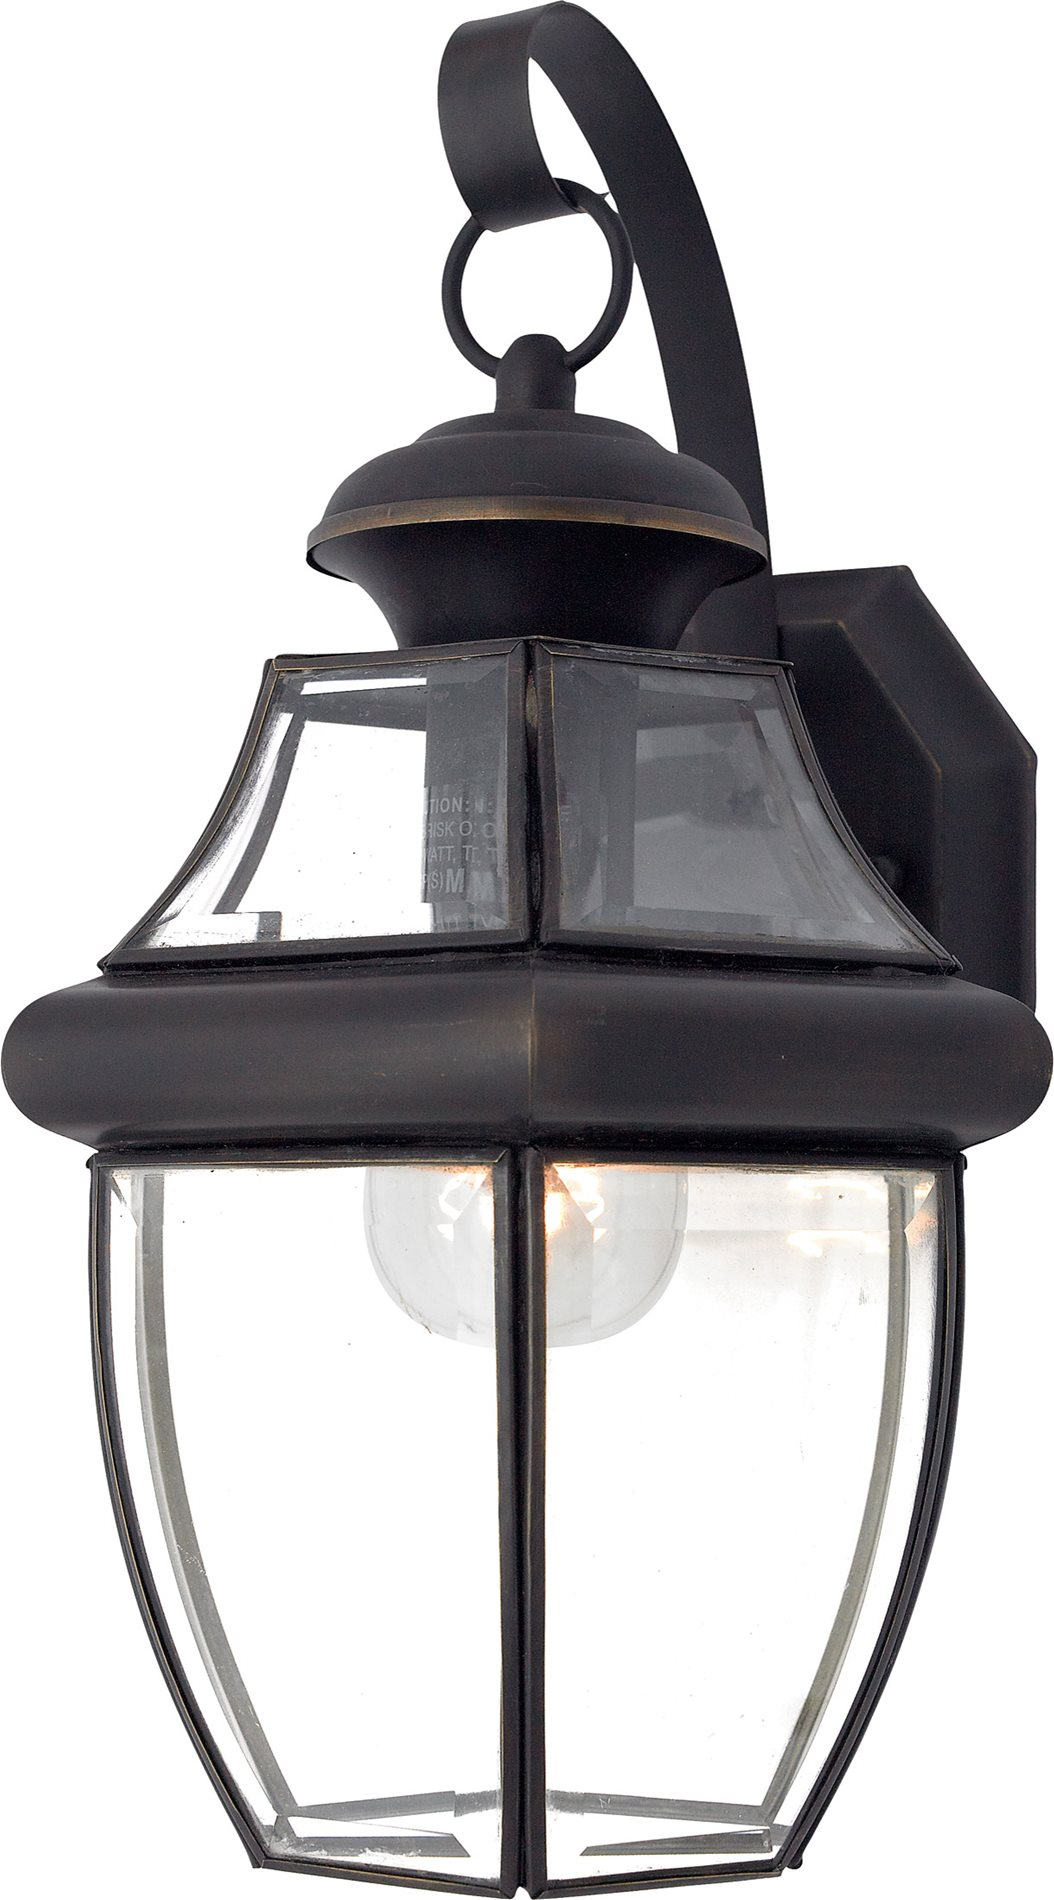 Quoizel ny8316z newbury traditional outdoor wall sconce qz for Outside home lighting